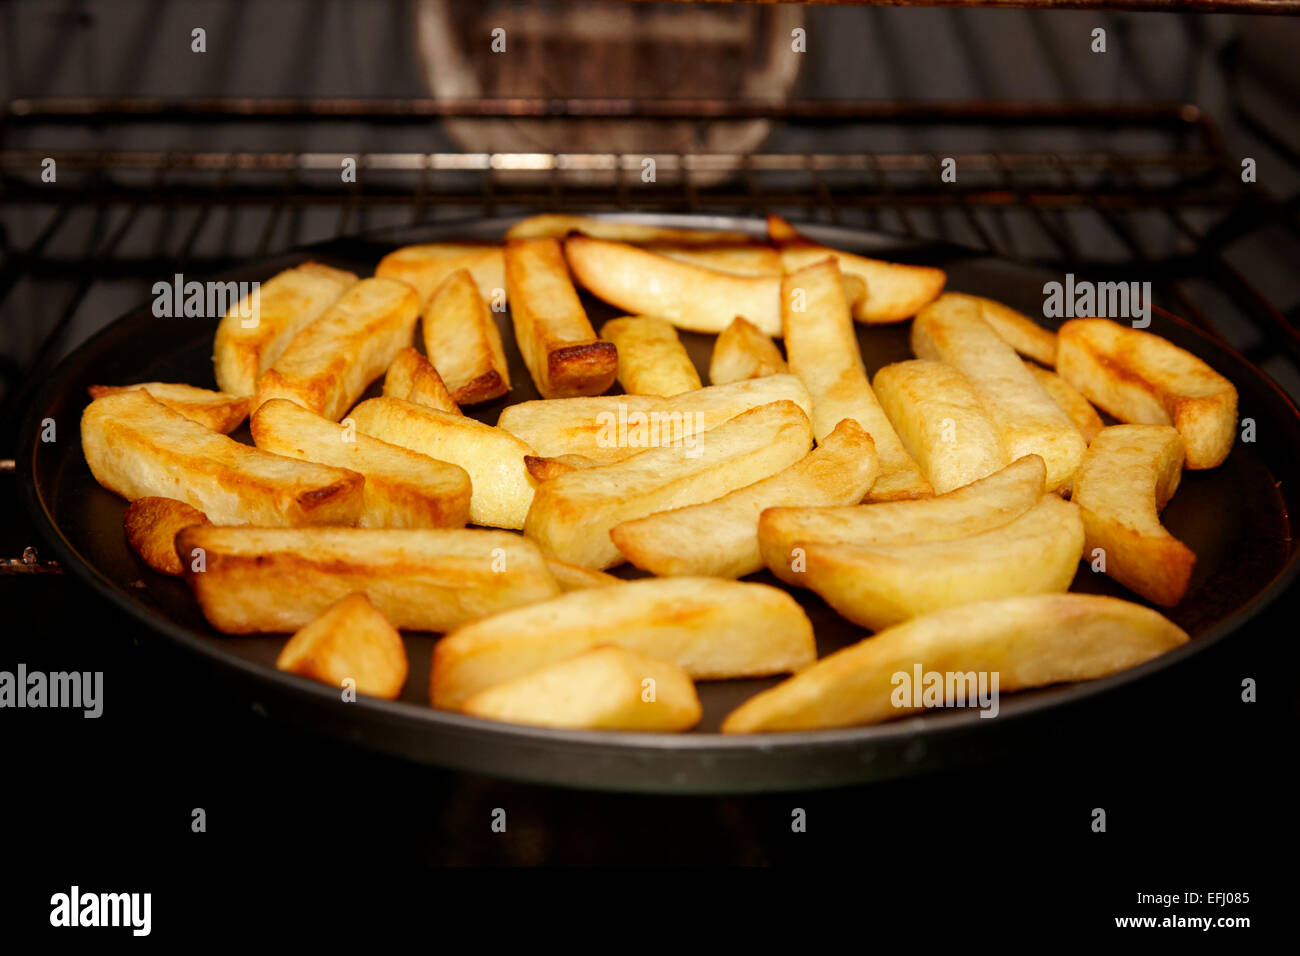 cooking oven chips in the oven - Stock Image